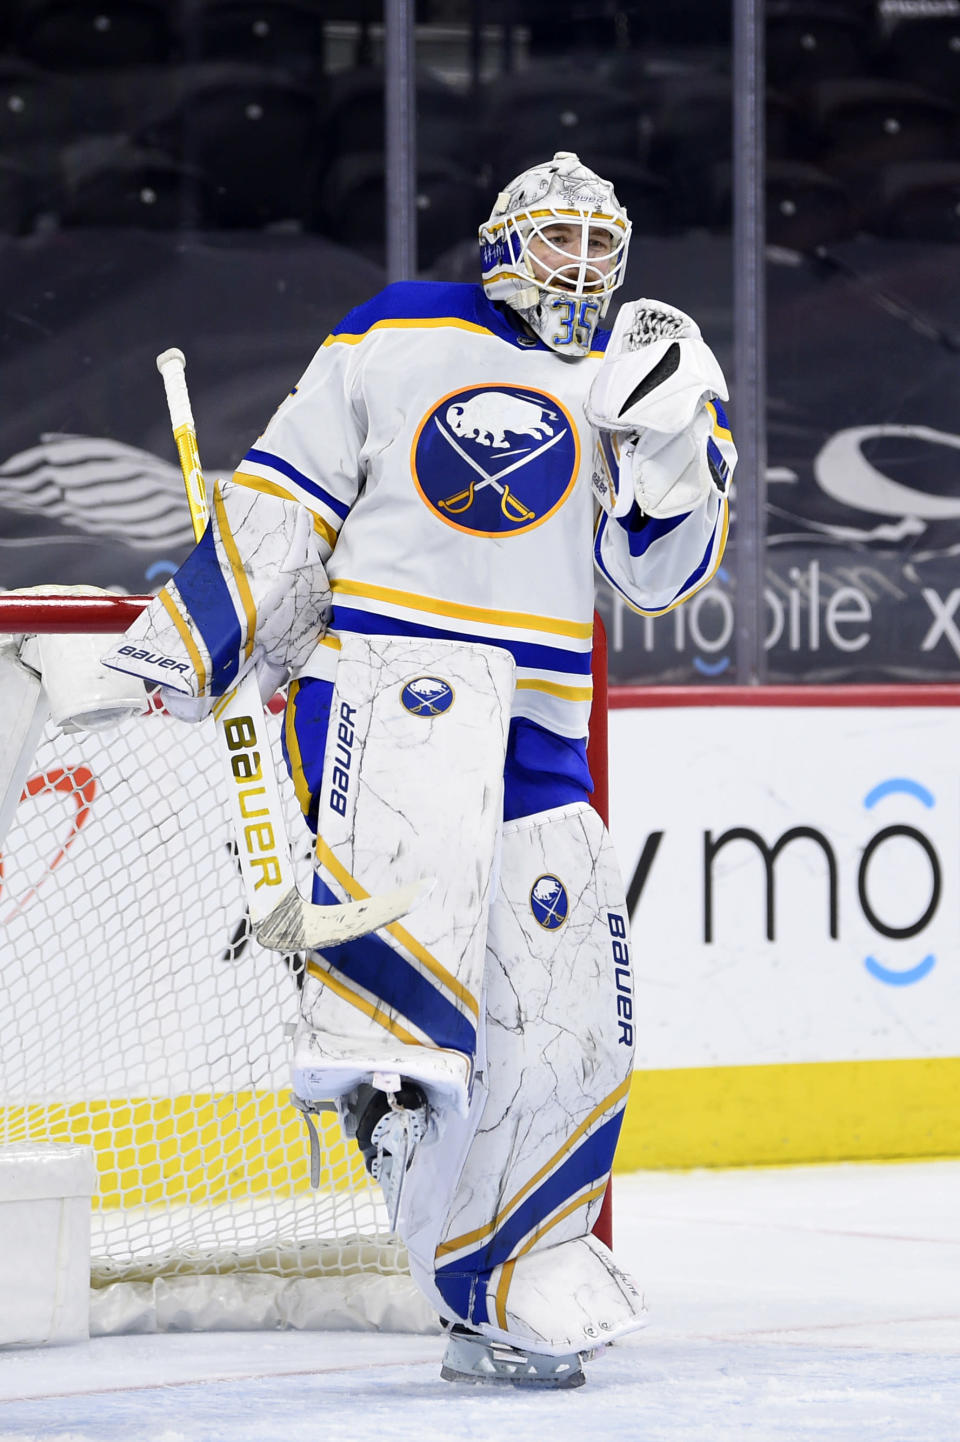 Buffalo Sabres' Linus Ullmark celebrates after the team's victory against the Philadelphia Flyers, Sunday, April 11, 2021, in Philadelphia. . (AP Photo/Derik Hamilton)